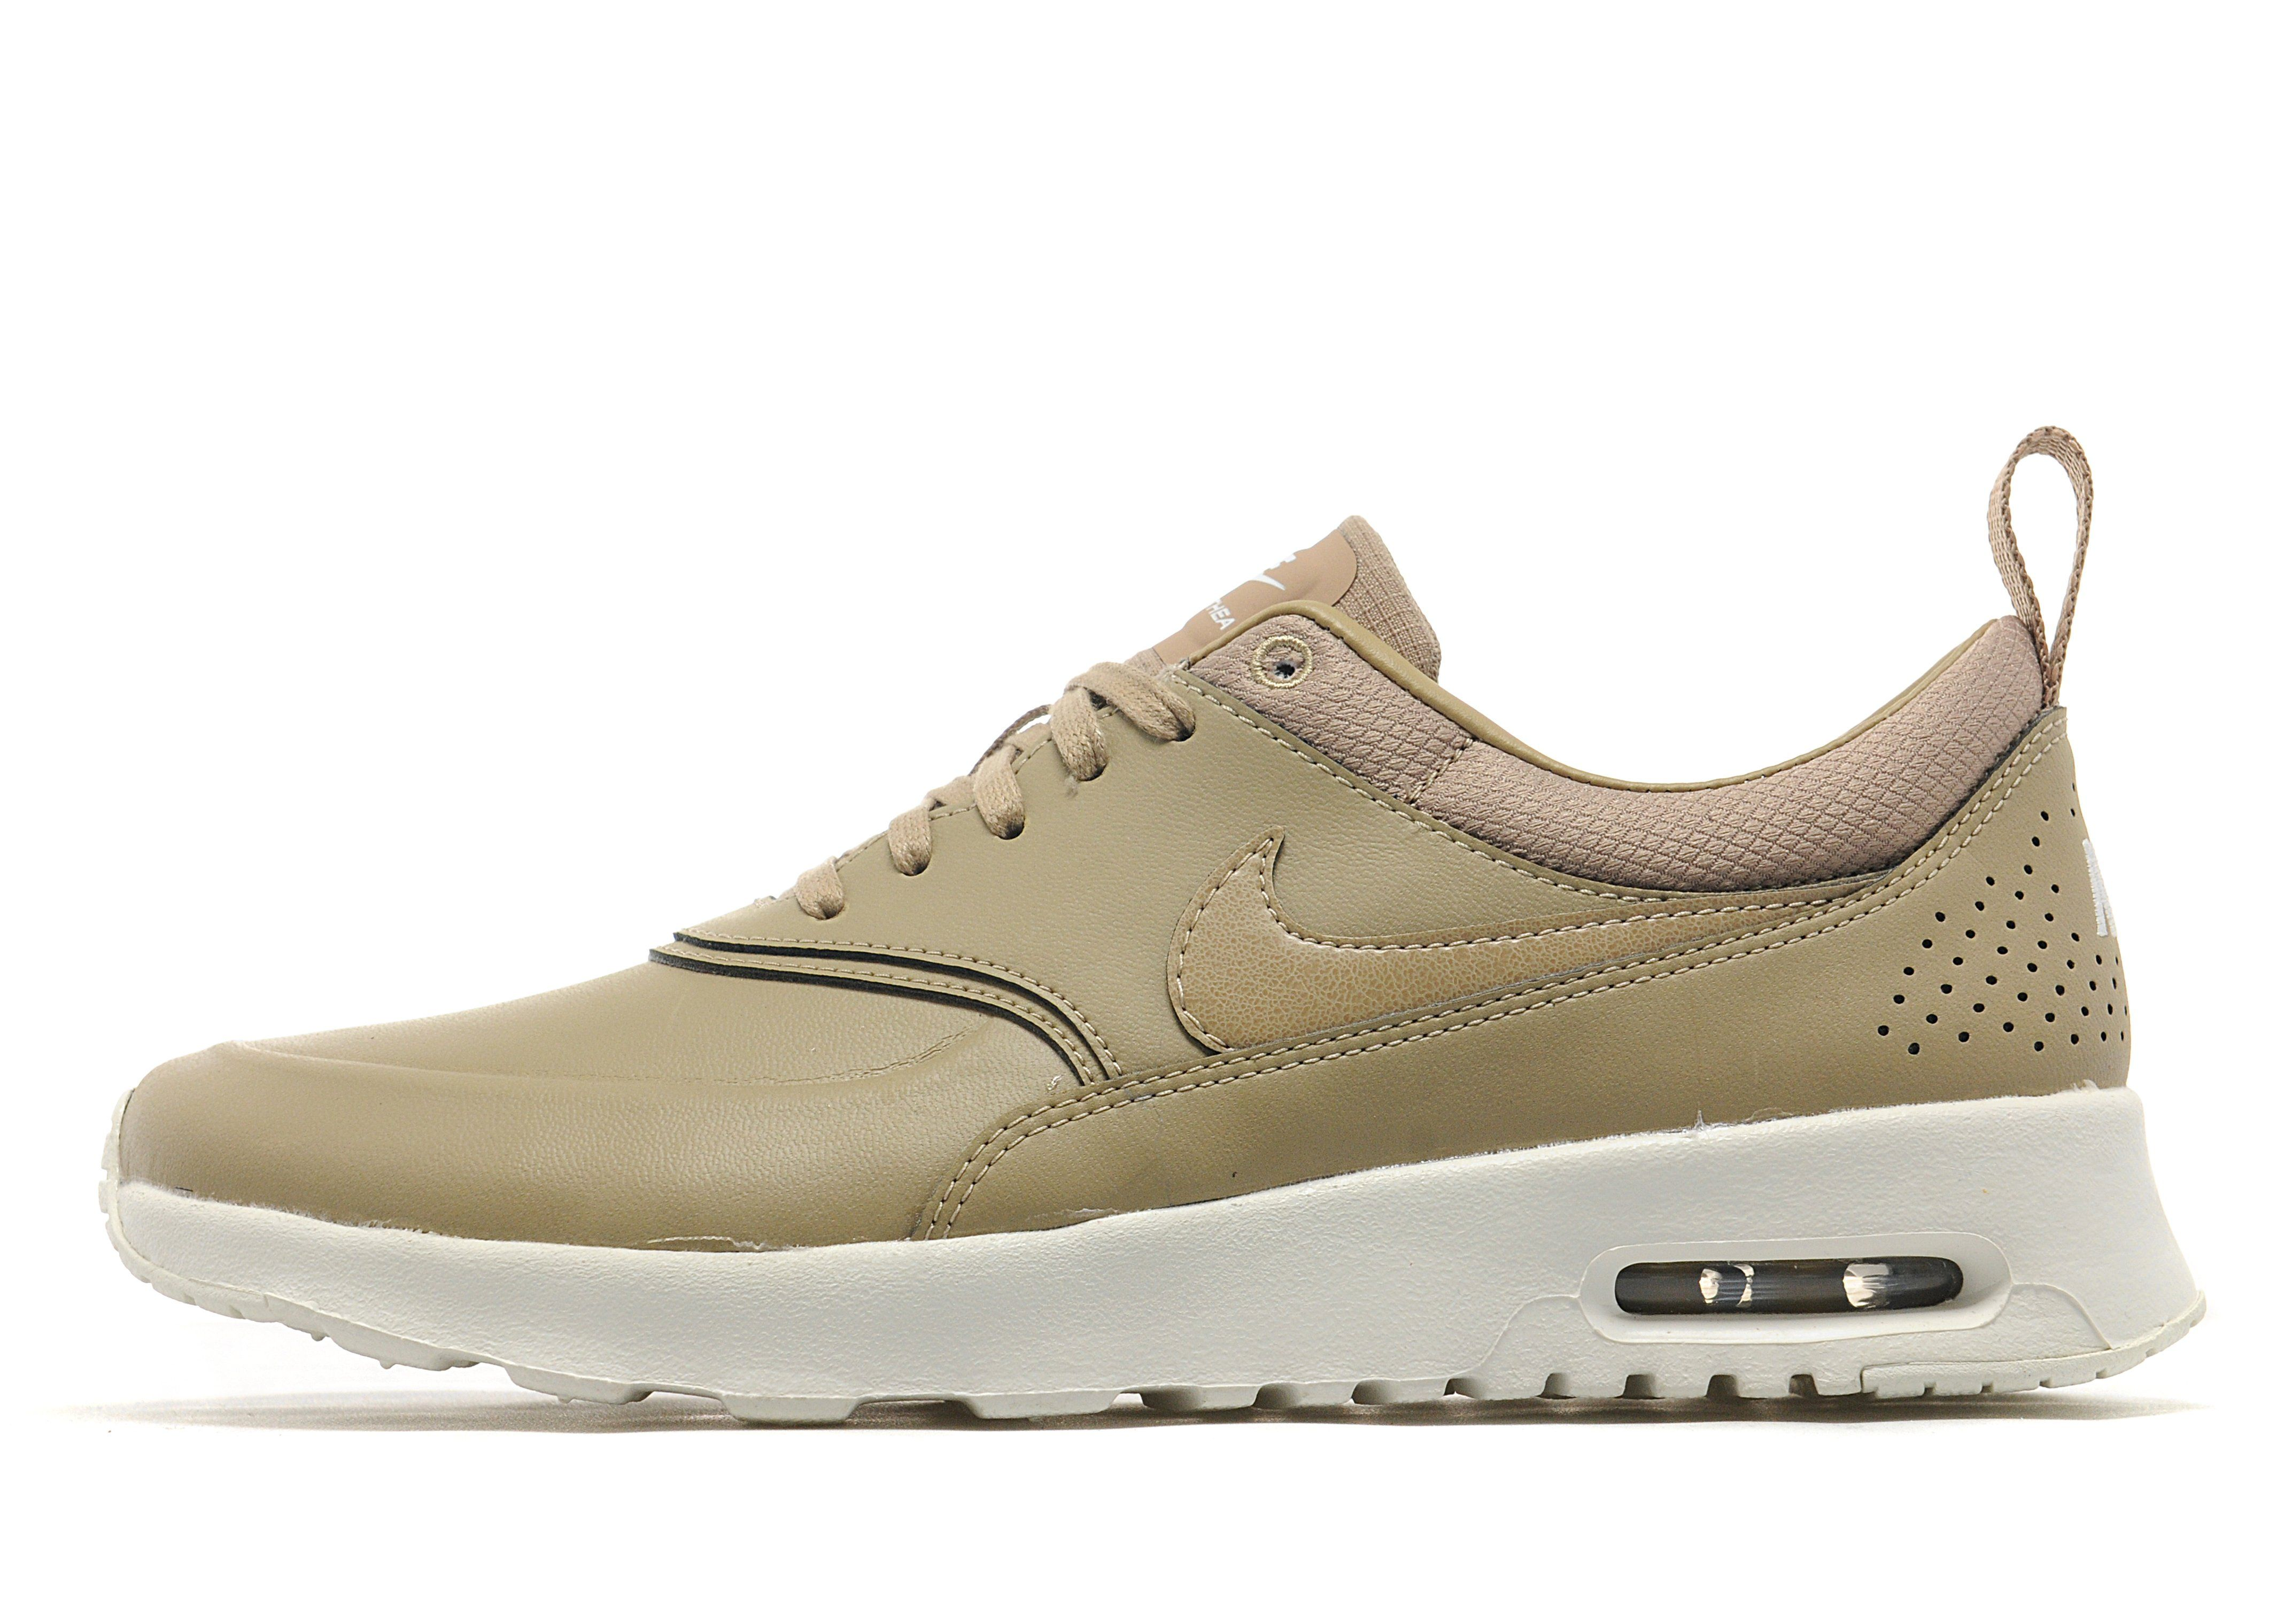 nike air max thea premium women 39 s jd sports. Black Bedroom Furniture Sets. Home Design Ideas